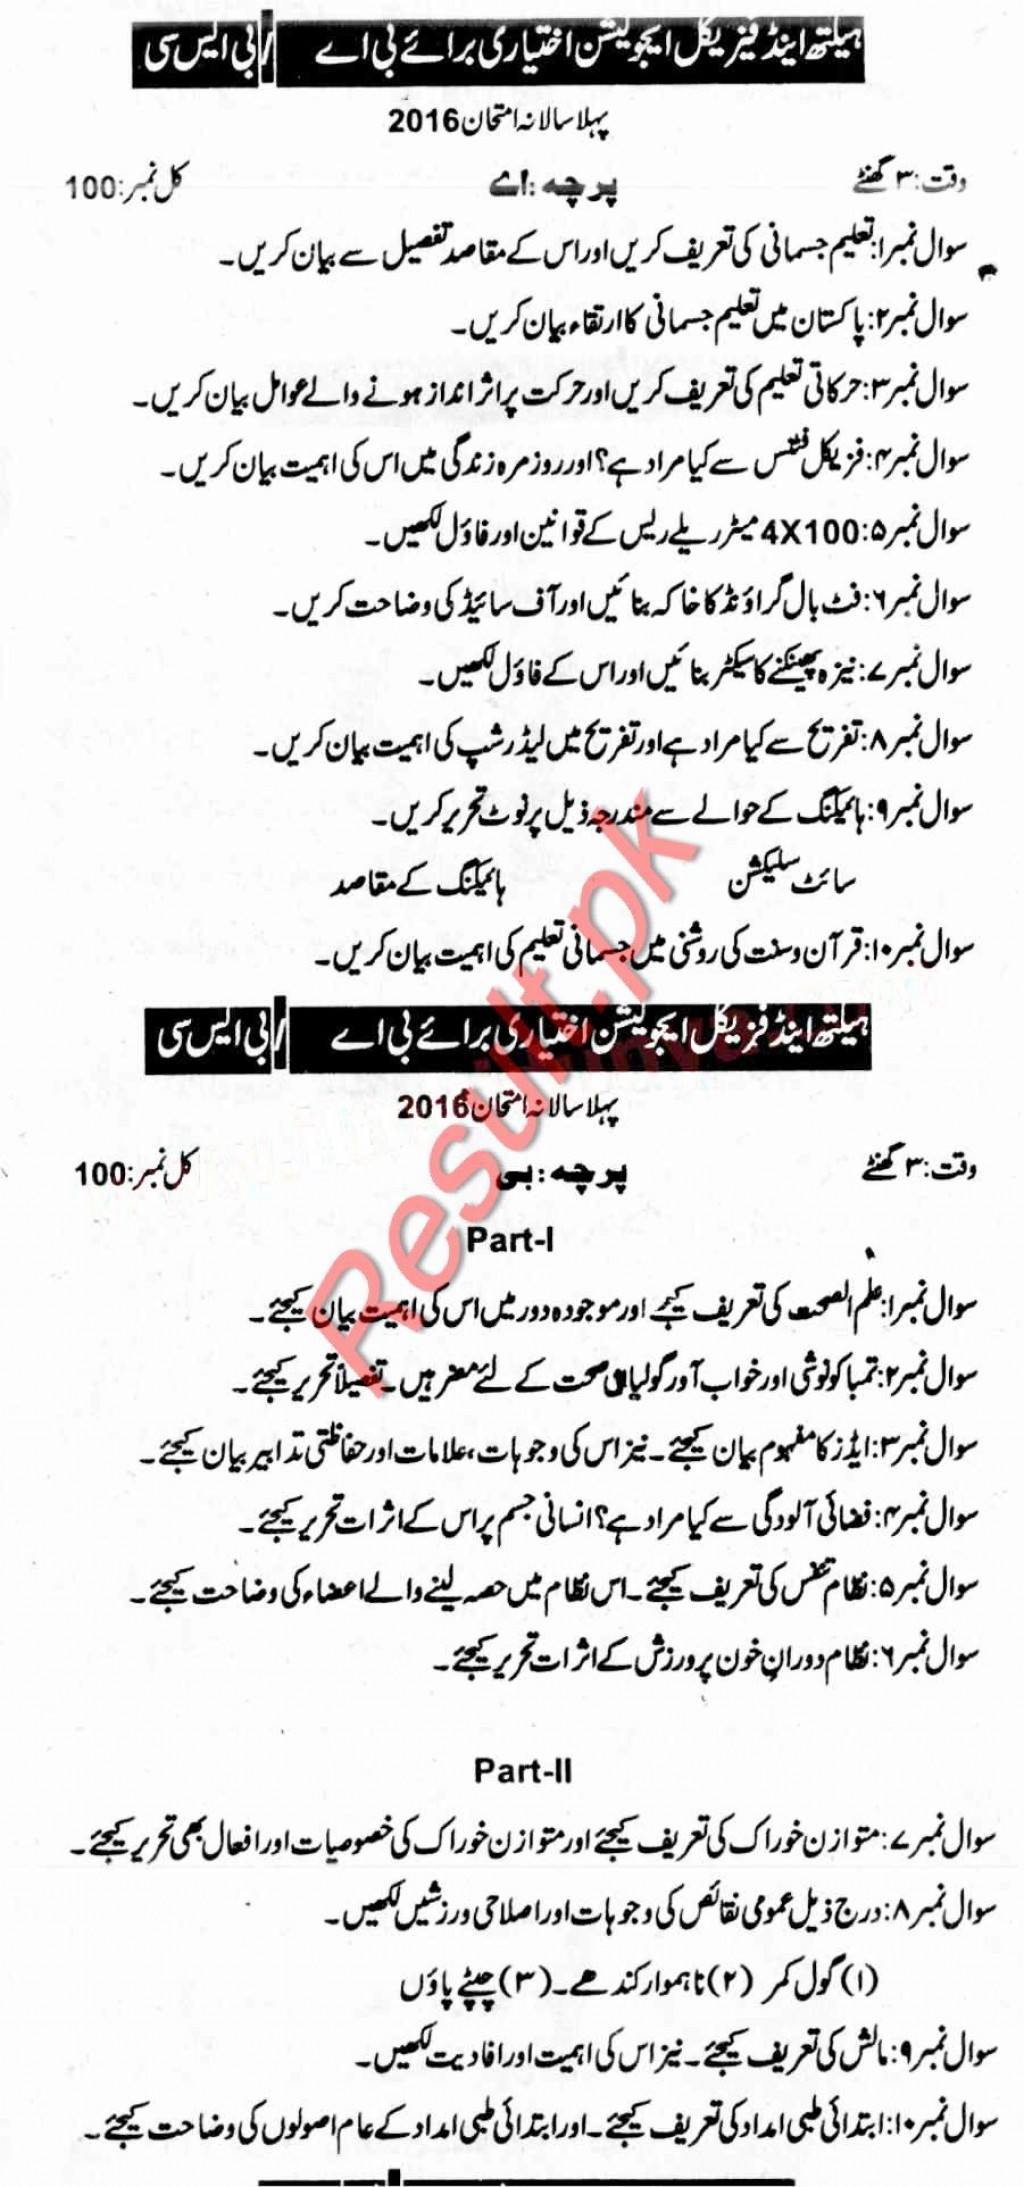 015 Research Paper Educational Past Exam Papers Sargodha University Bsc Health Education Elective Urdu Amazing Large